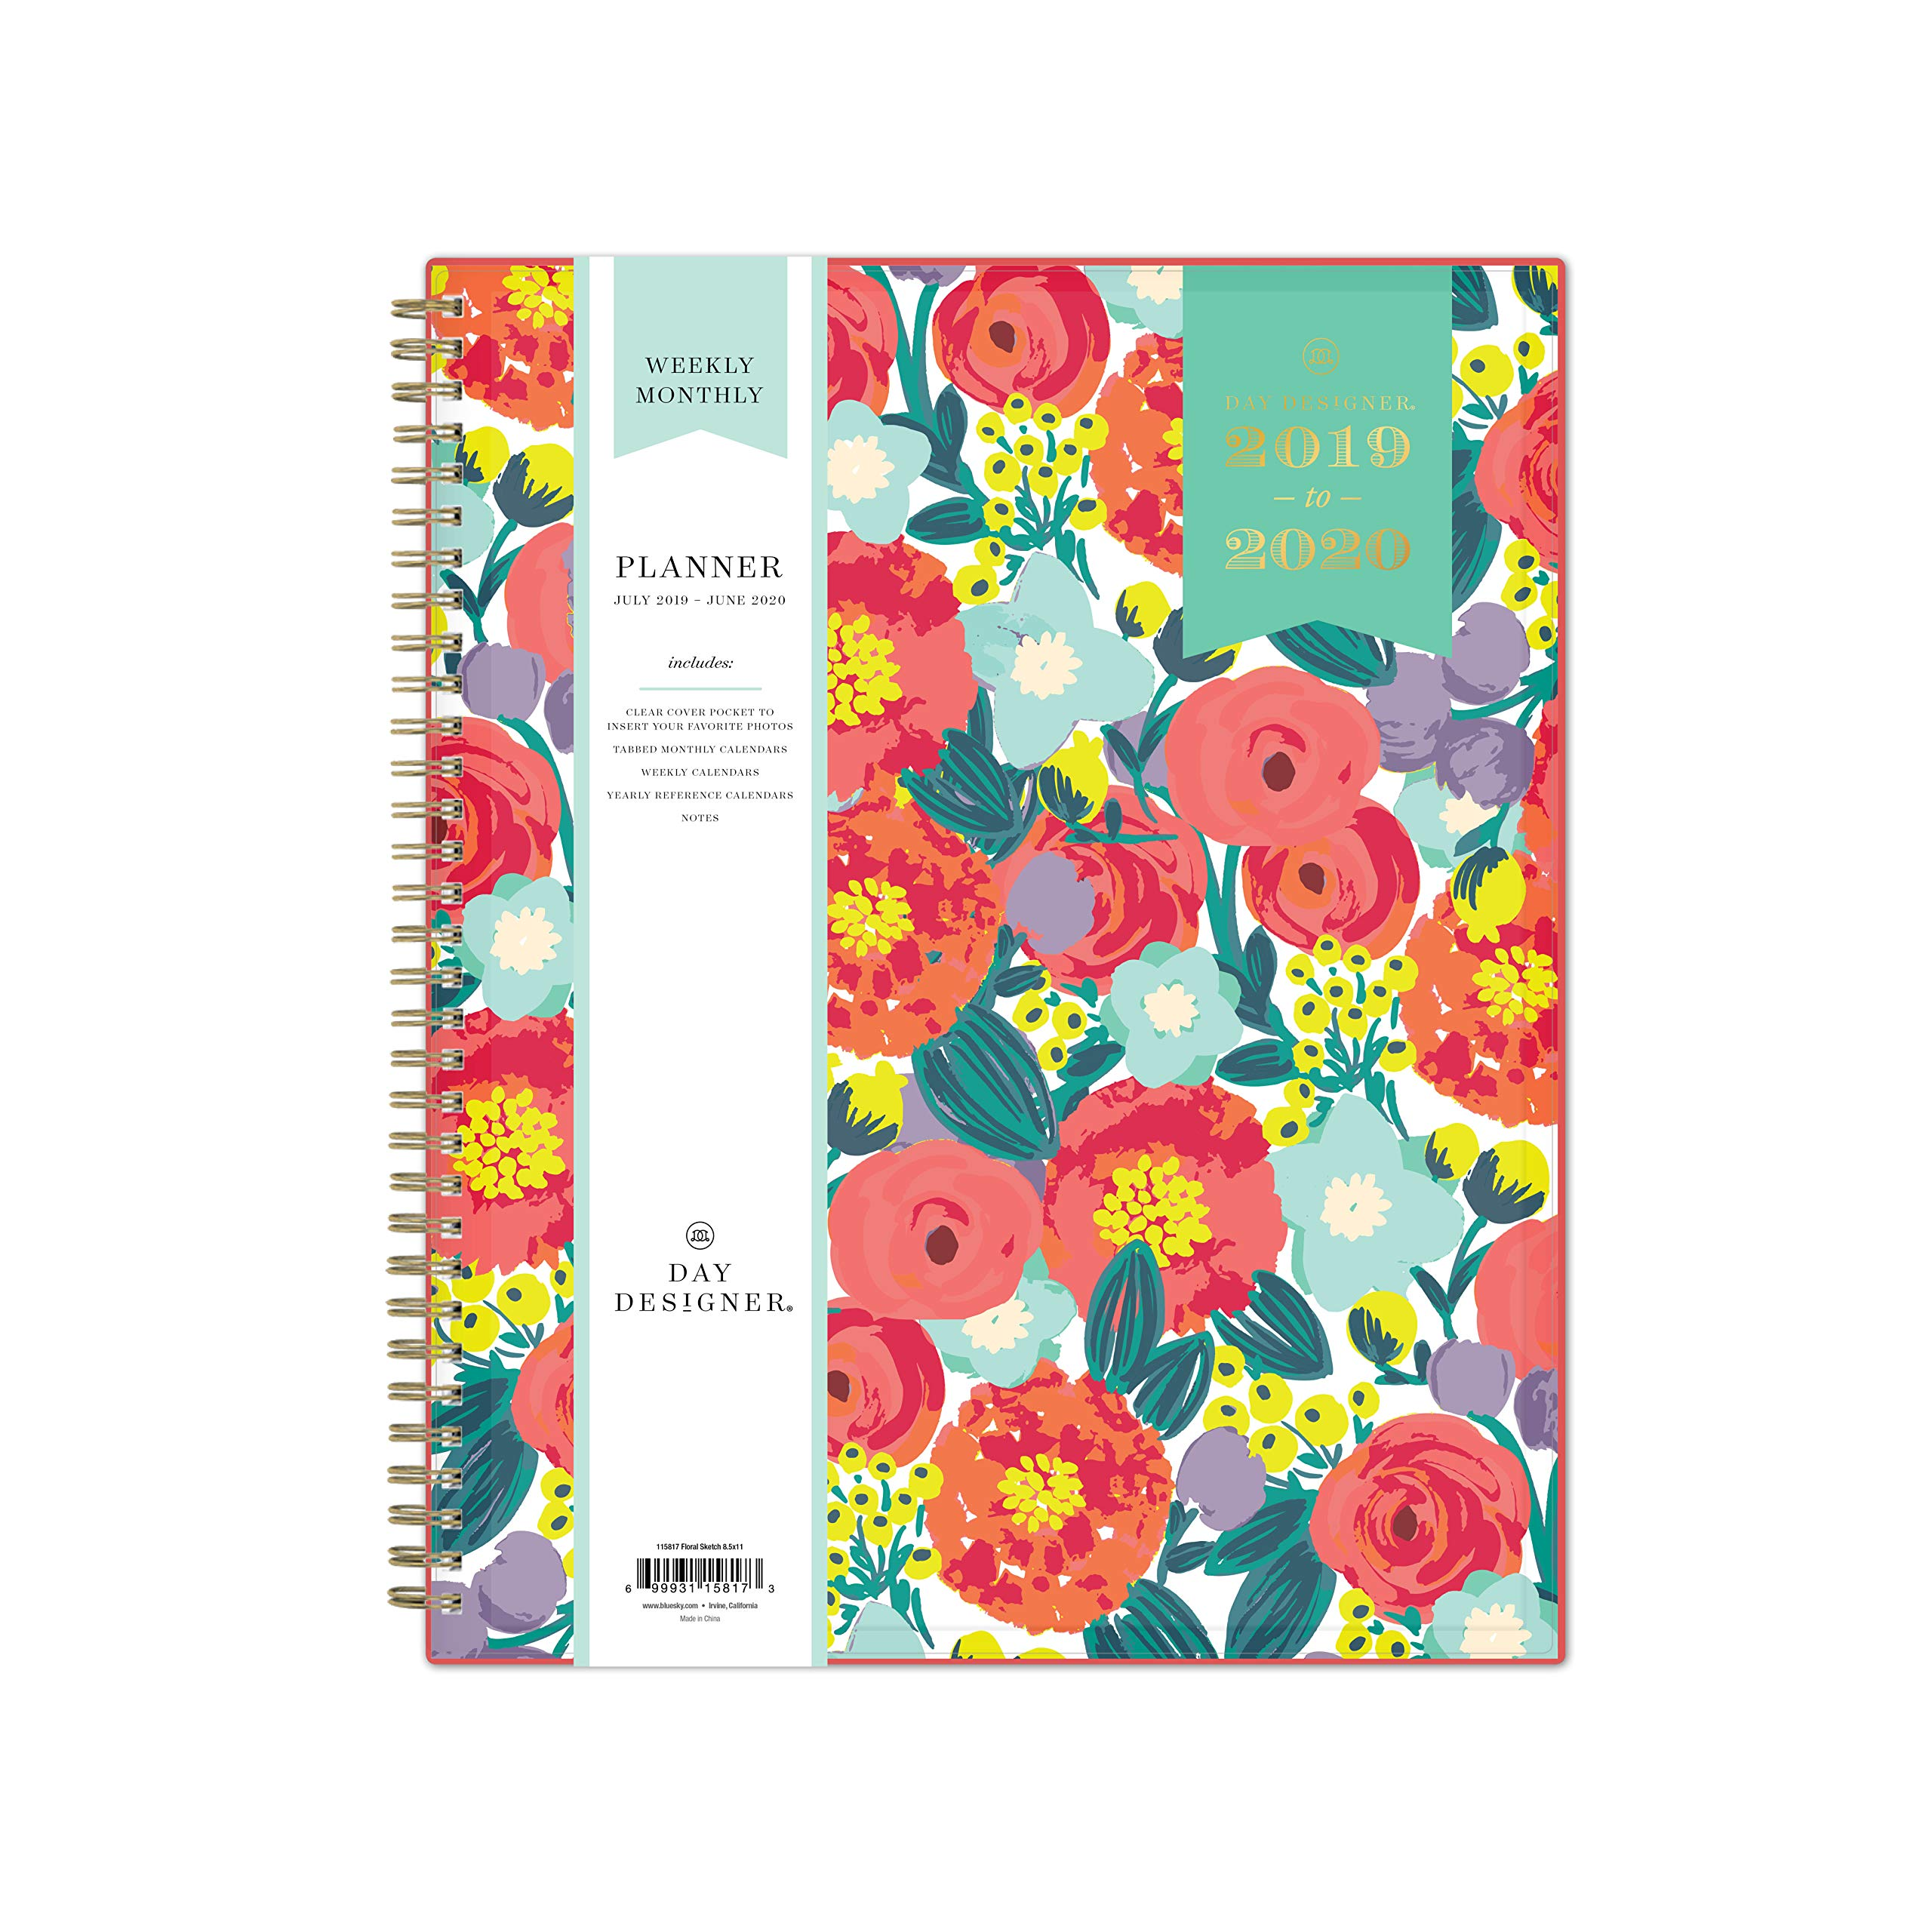 Day Designer for Blue Sky 2019-2020 Academic Year Weekly & Monthly Planner, Flexible Cover, Twin-Wire Binding, 8.5'' x 11'', Floral Sketch